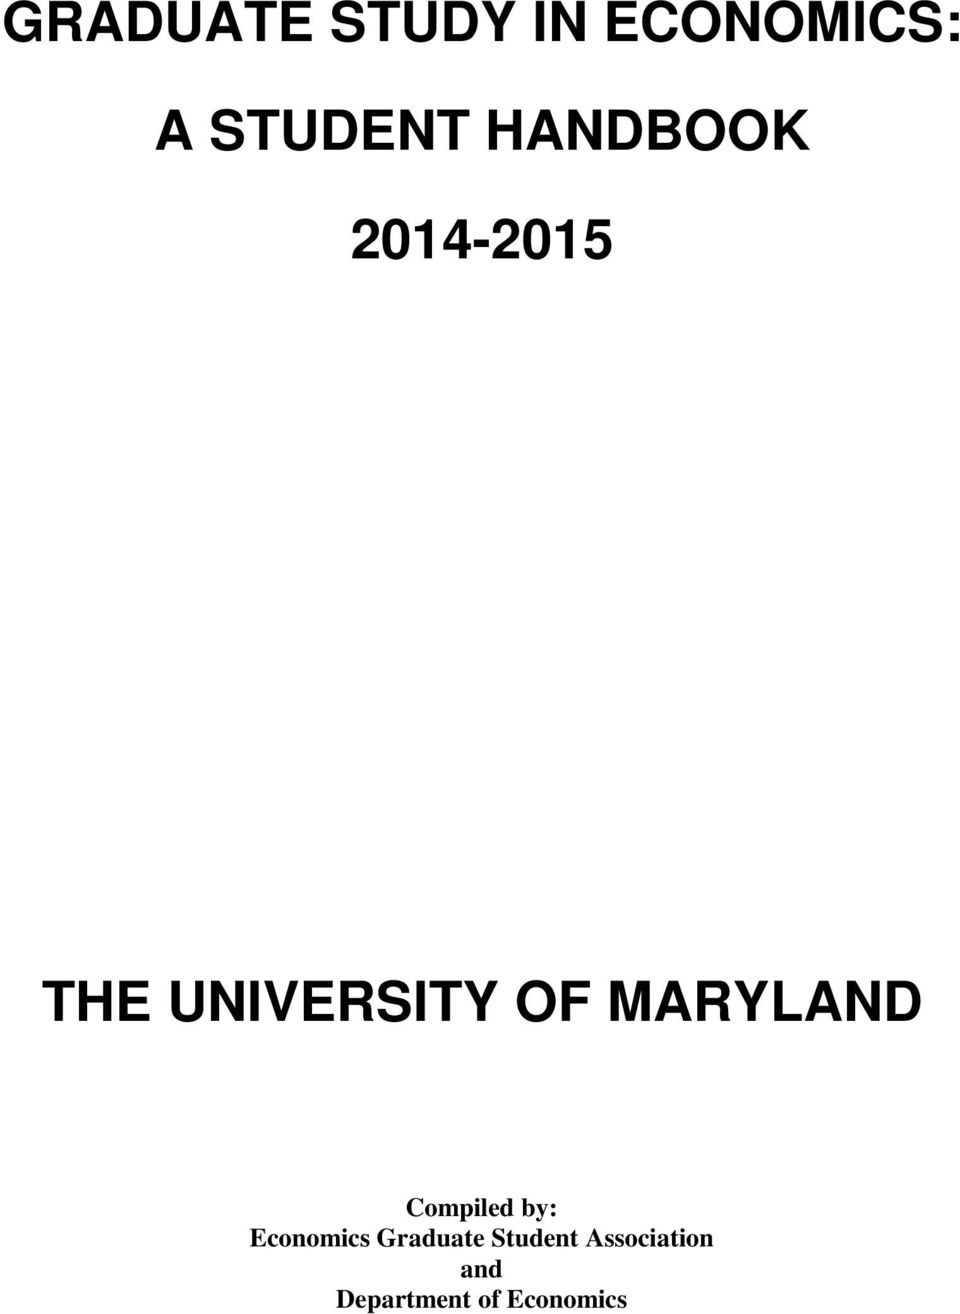 MARYLAND Compiled by: Economics Graduate